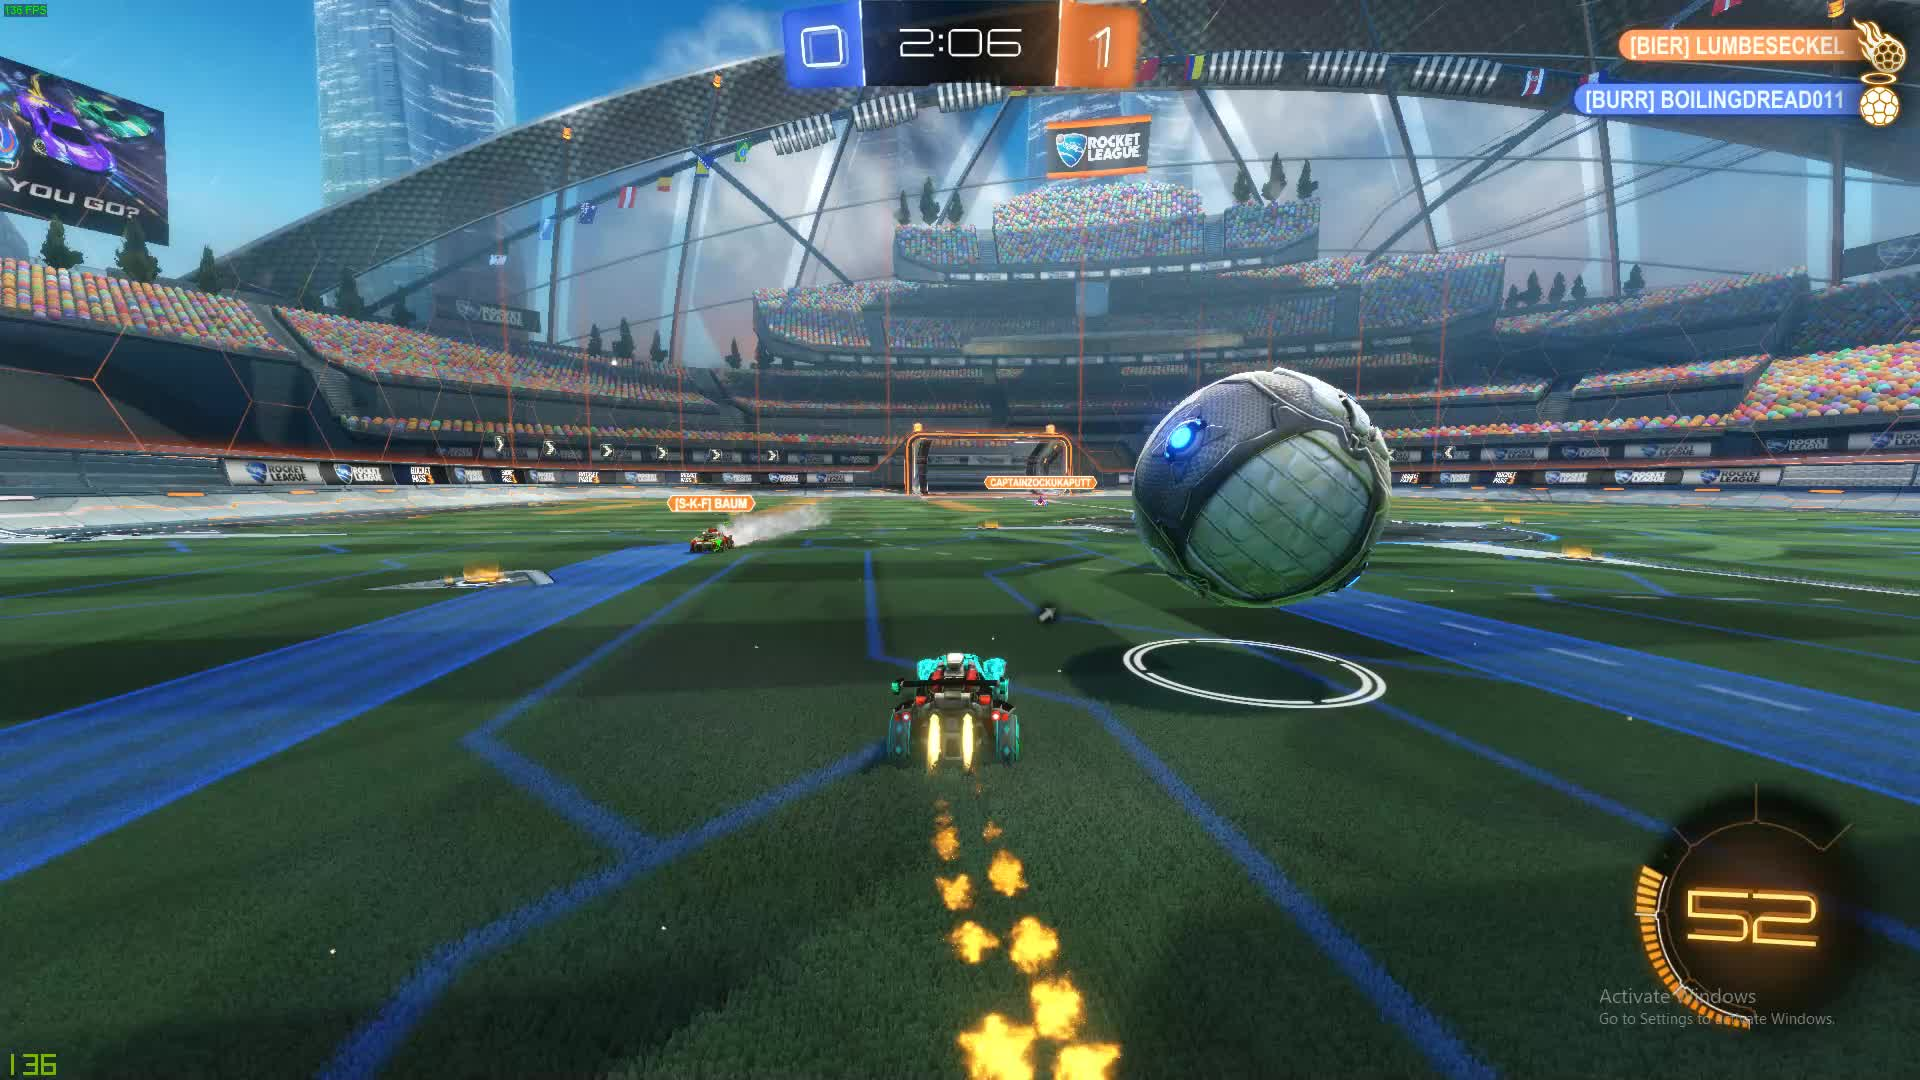 rocket league, rocketleague, Dribble play GIFs